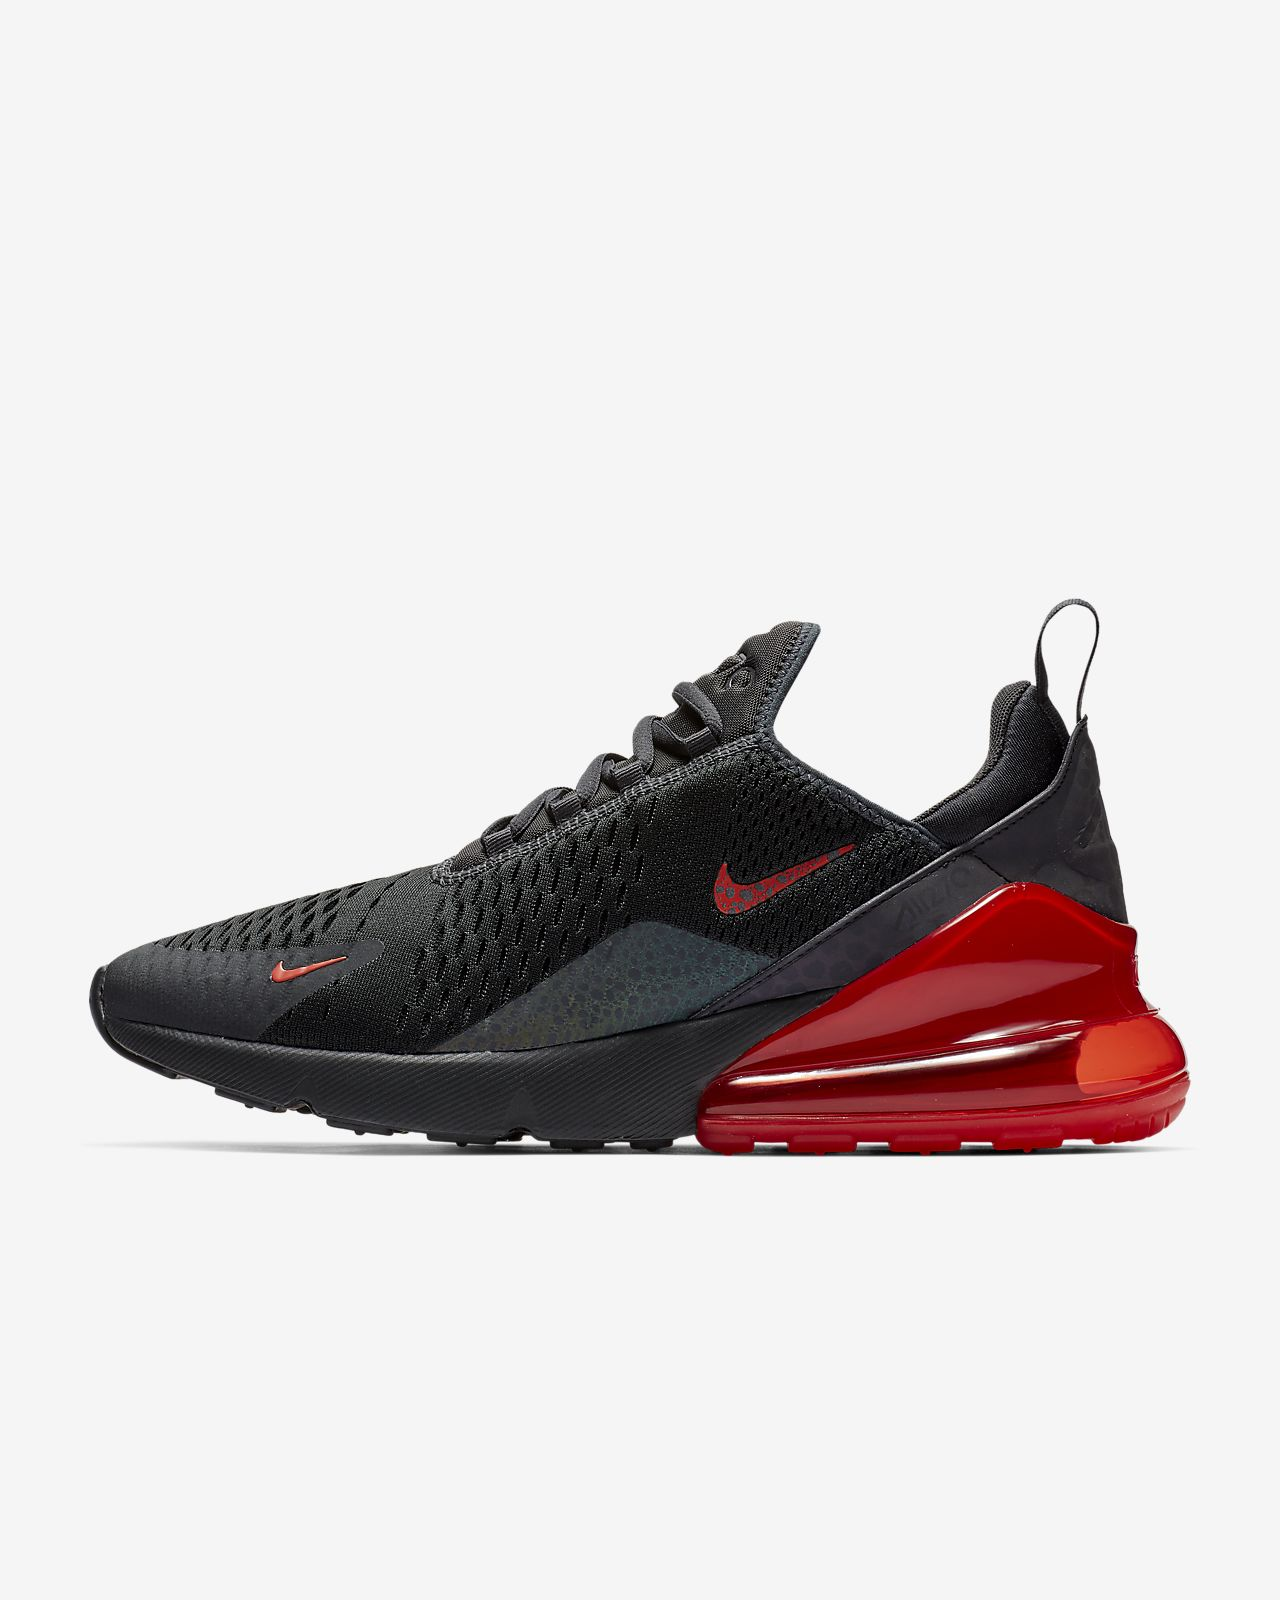 1f8e433e071a Nike Air Max 270 SE Reflective Men s Shoe. Nike.com